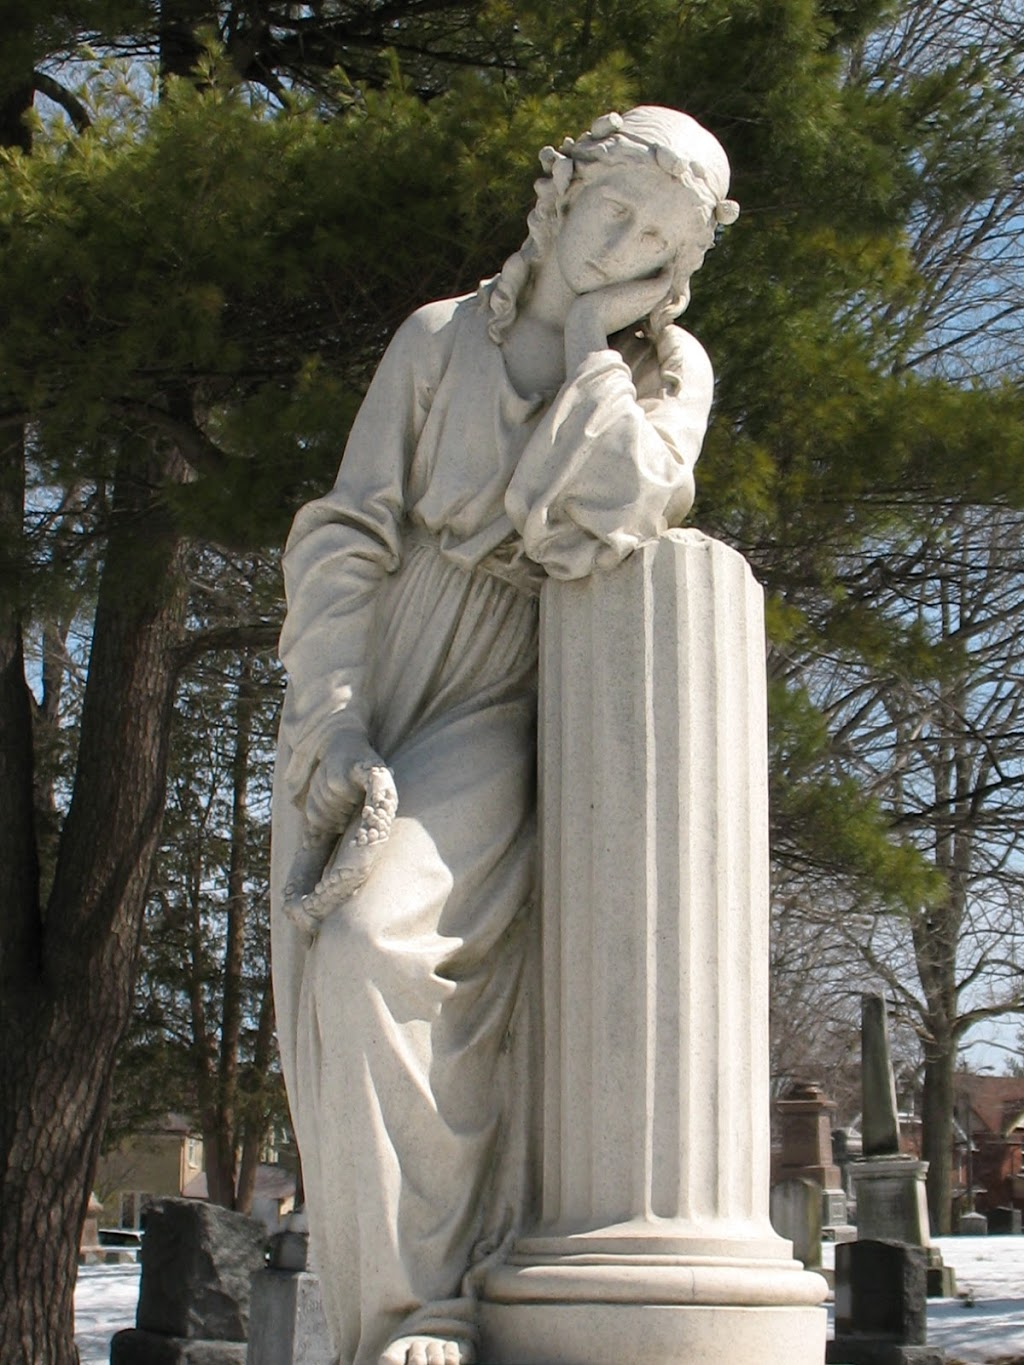 Mount Hope Cemetery | cemetery | 83 Roger St, Waterloo, ON N2J 4A8, Canada | 5197412880 OR +1 519-741-2880